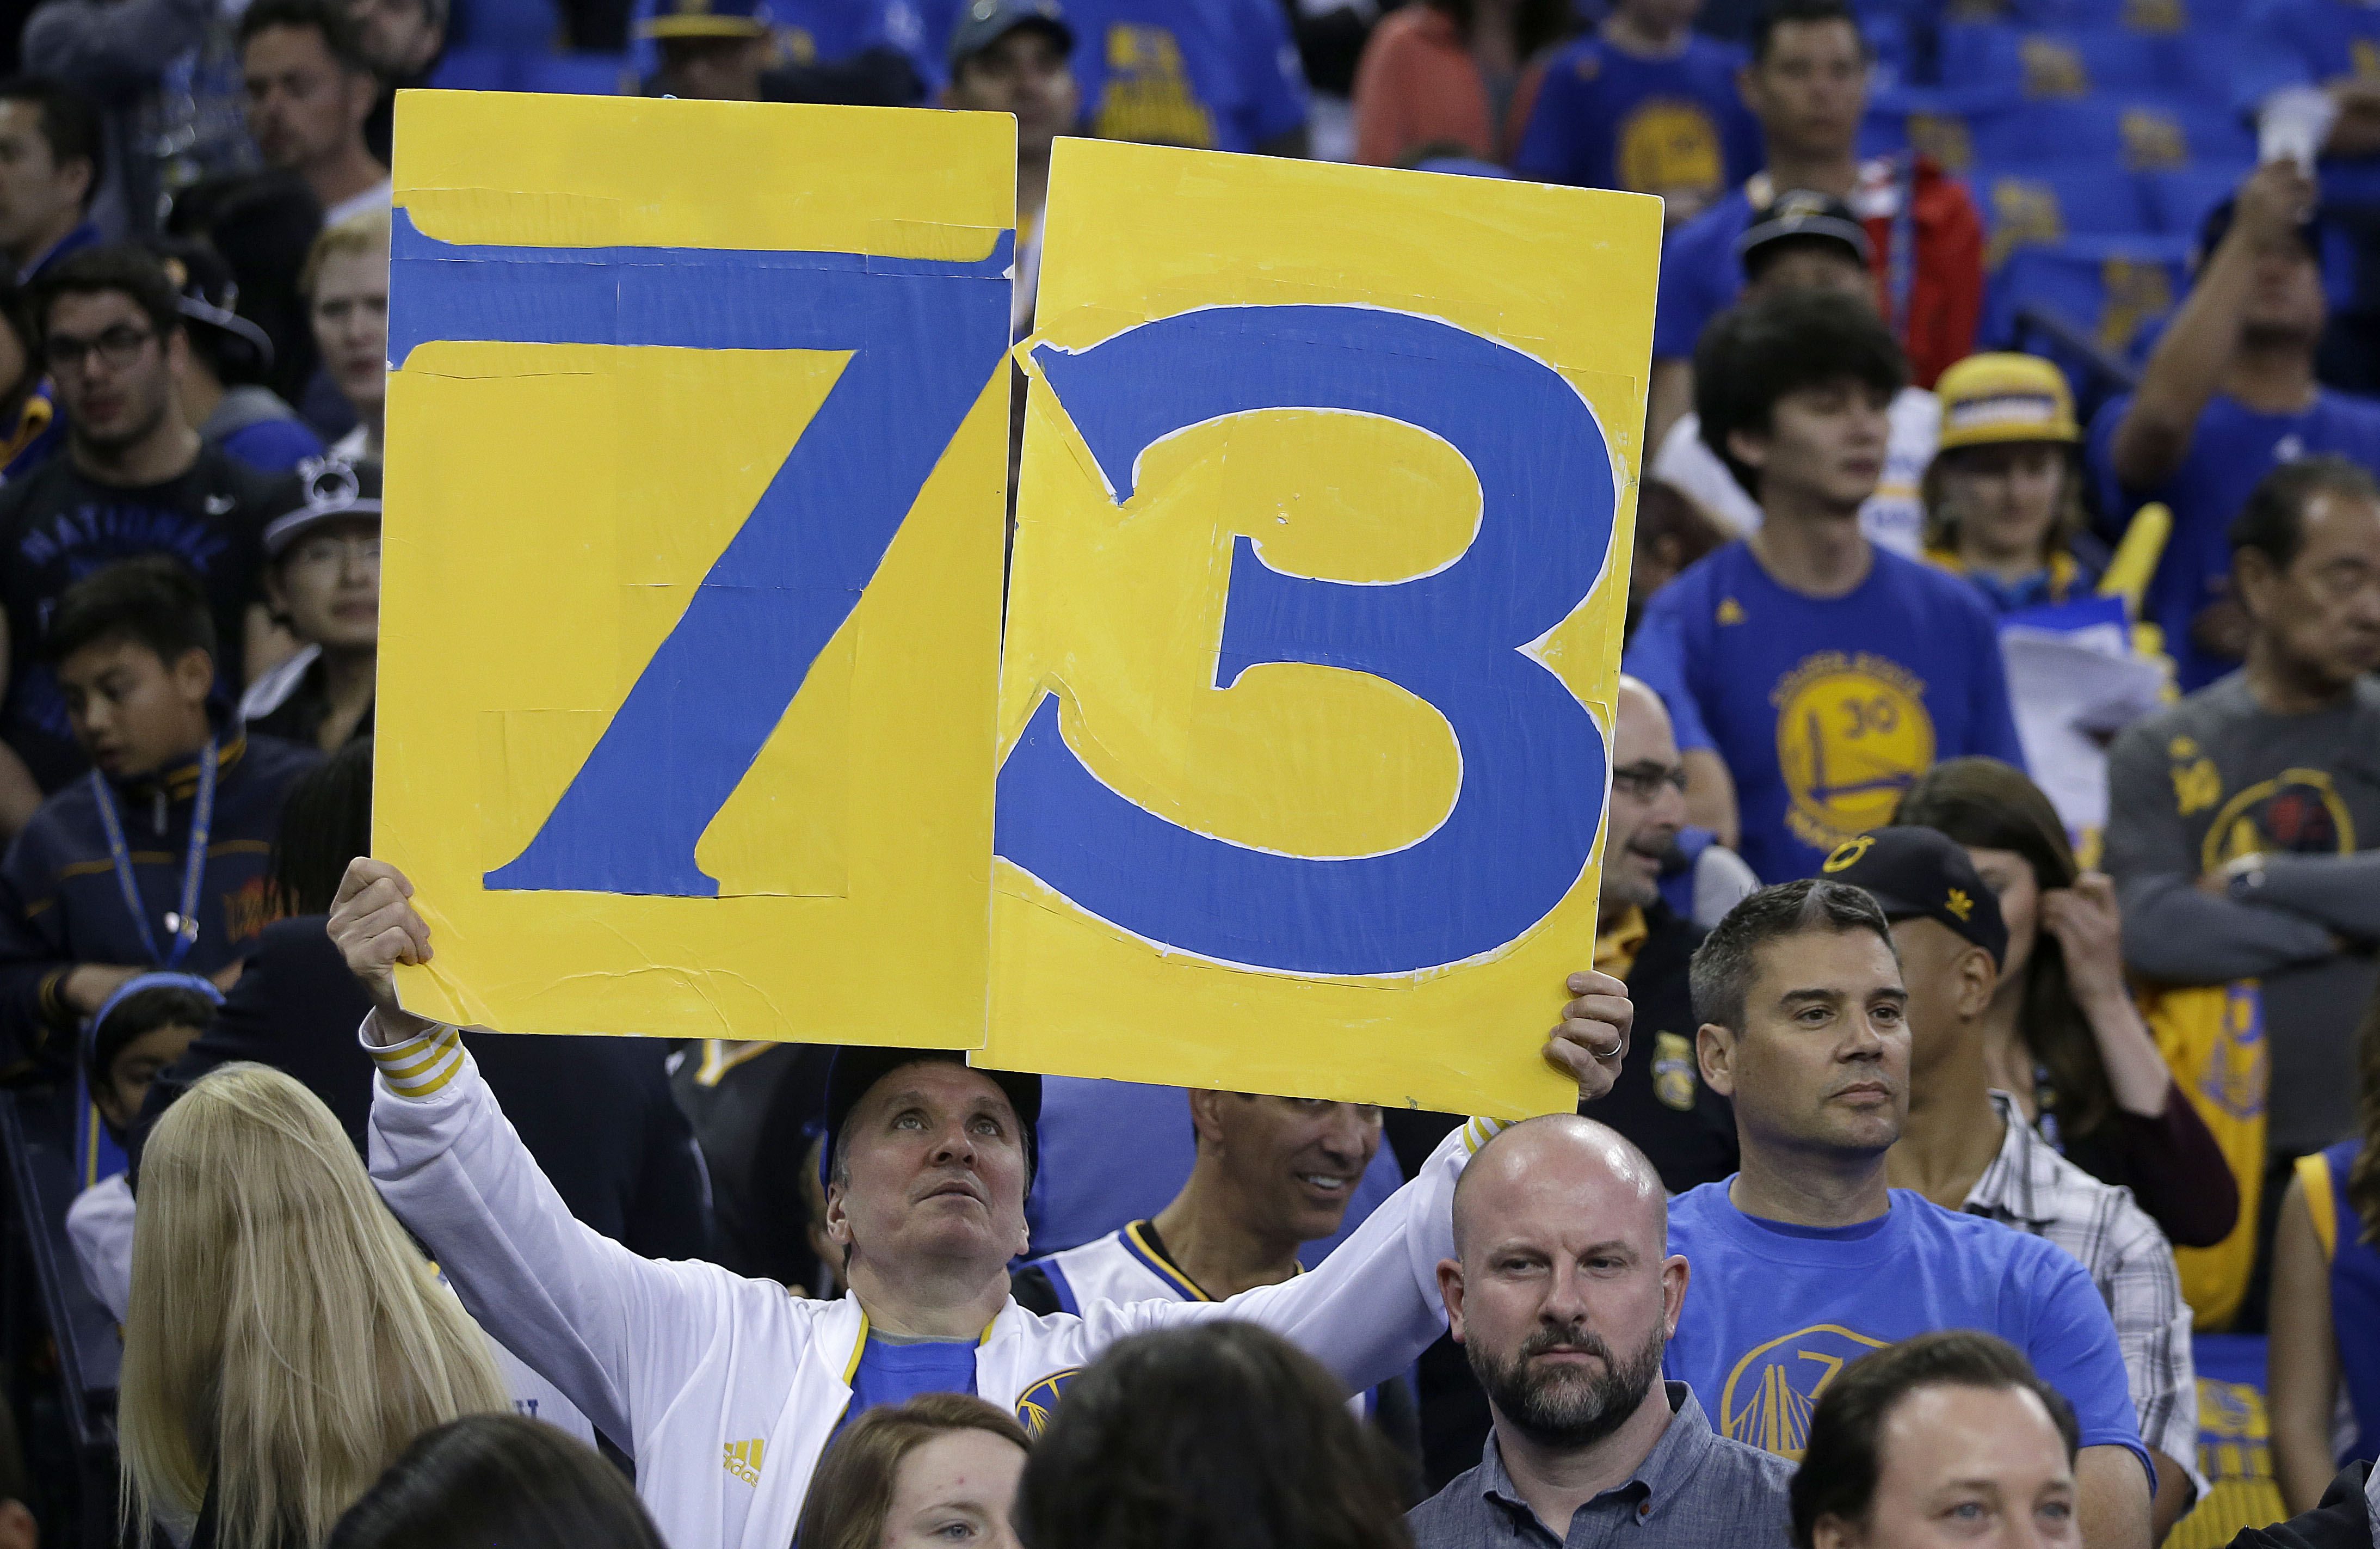 A Golden State Warriors fan holds up a 73 sign before an NBA basketball game between the Warriors and the Memphis Grizzlies in Oakland, Calif., Wednesday, April 13, 2016. The Warriors had 72 wins heading into their final regular-season game, the same number of wins as the 1995-1996 Chicago Bulls.